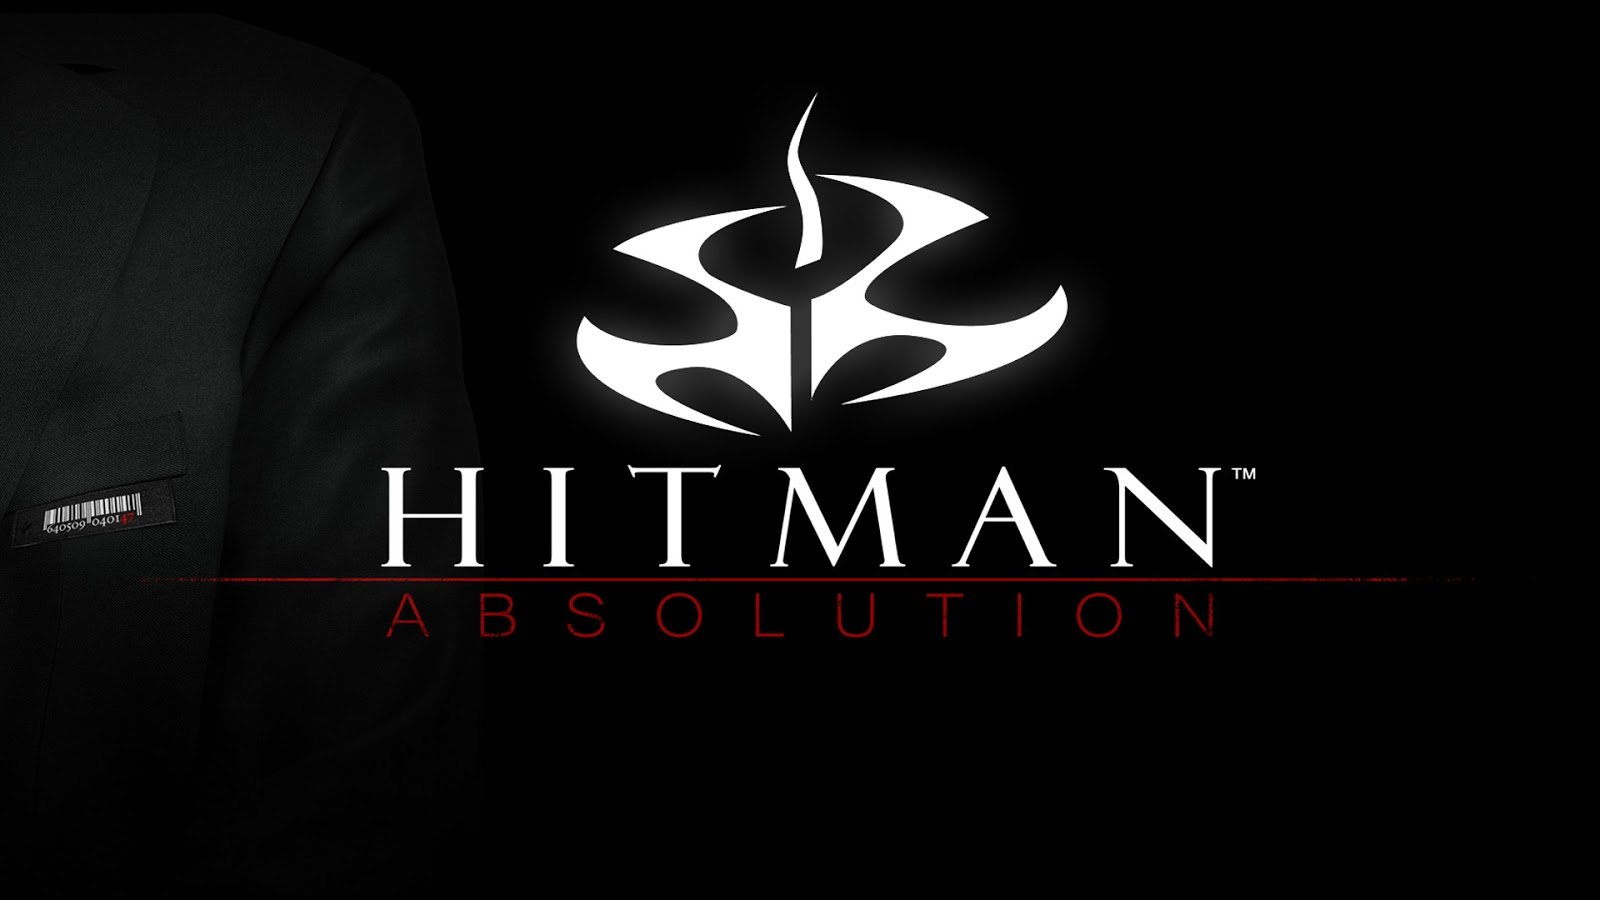 Full HD Hitman Wallpapers Full HD Wallpapers 1600x900